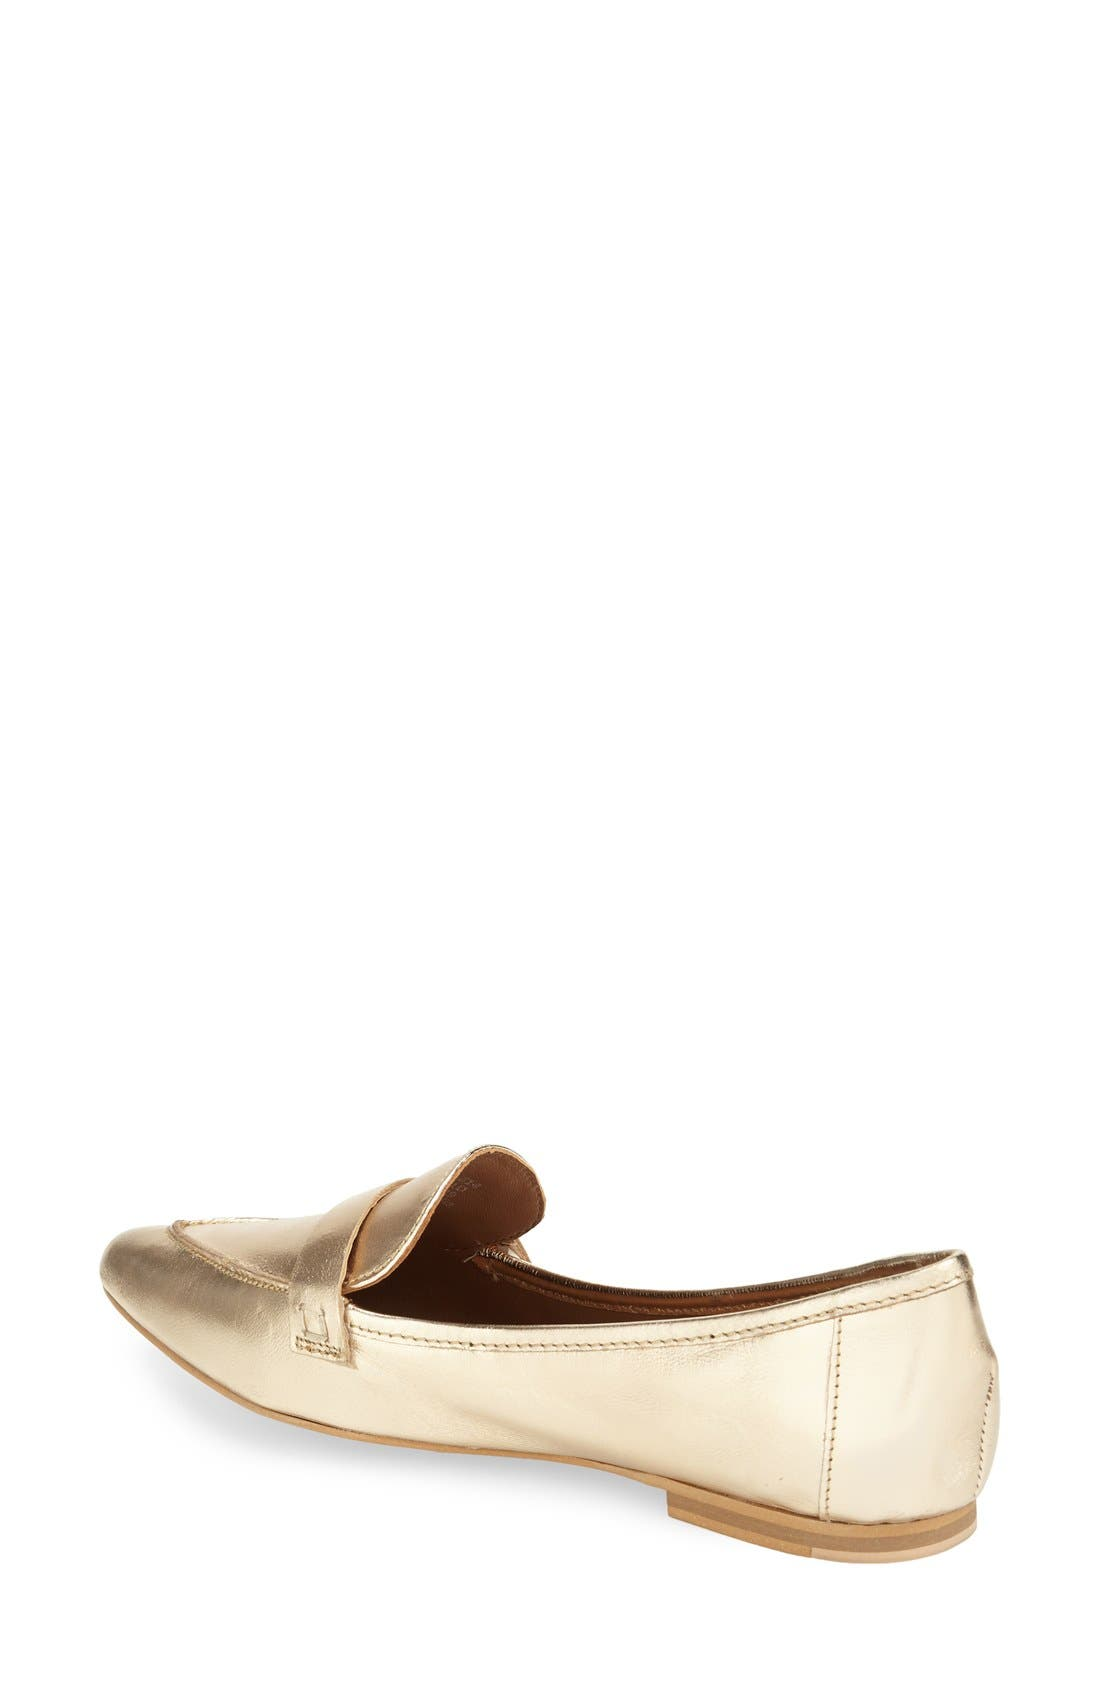 Kimi Loafer,                             Alternate thumbnail 9, color,